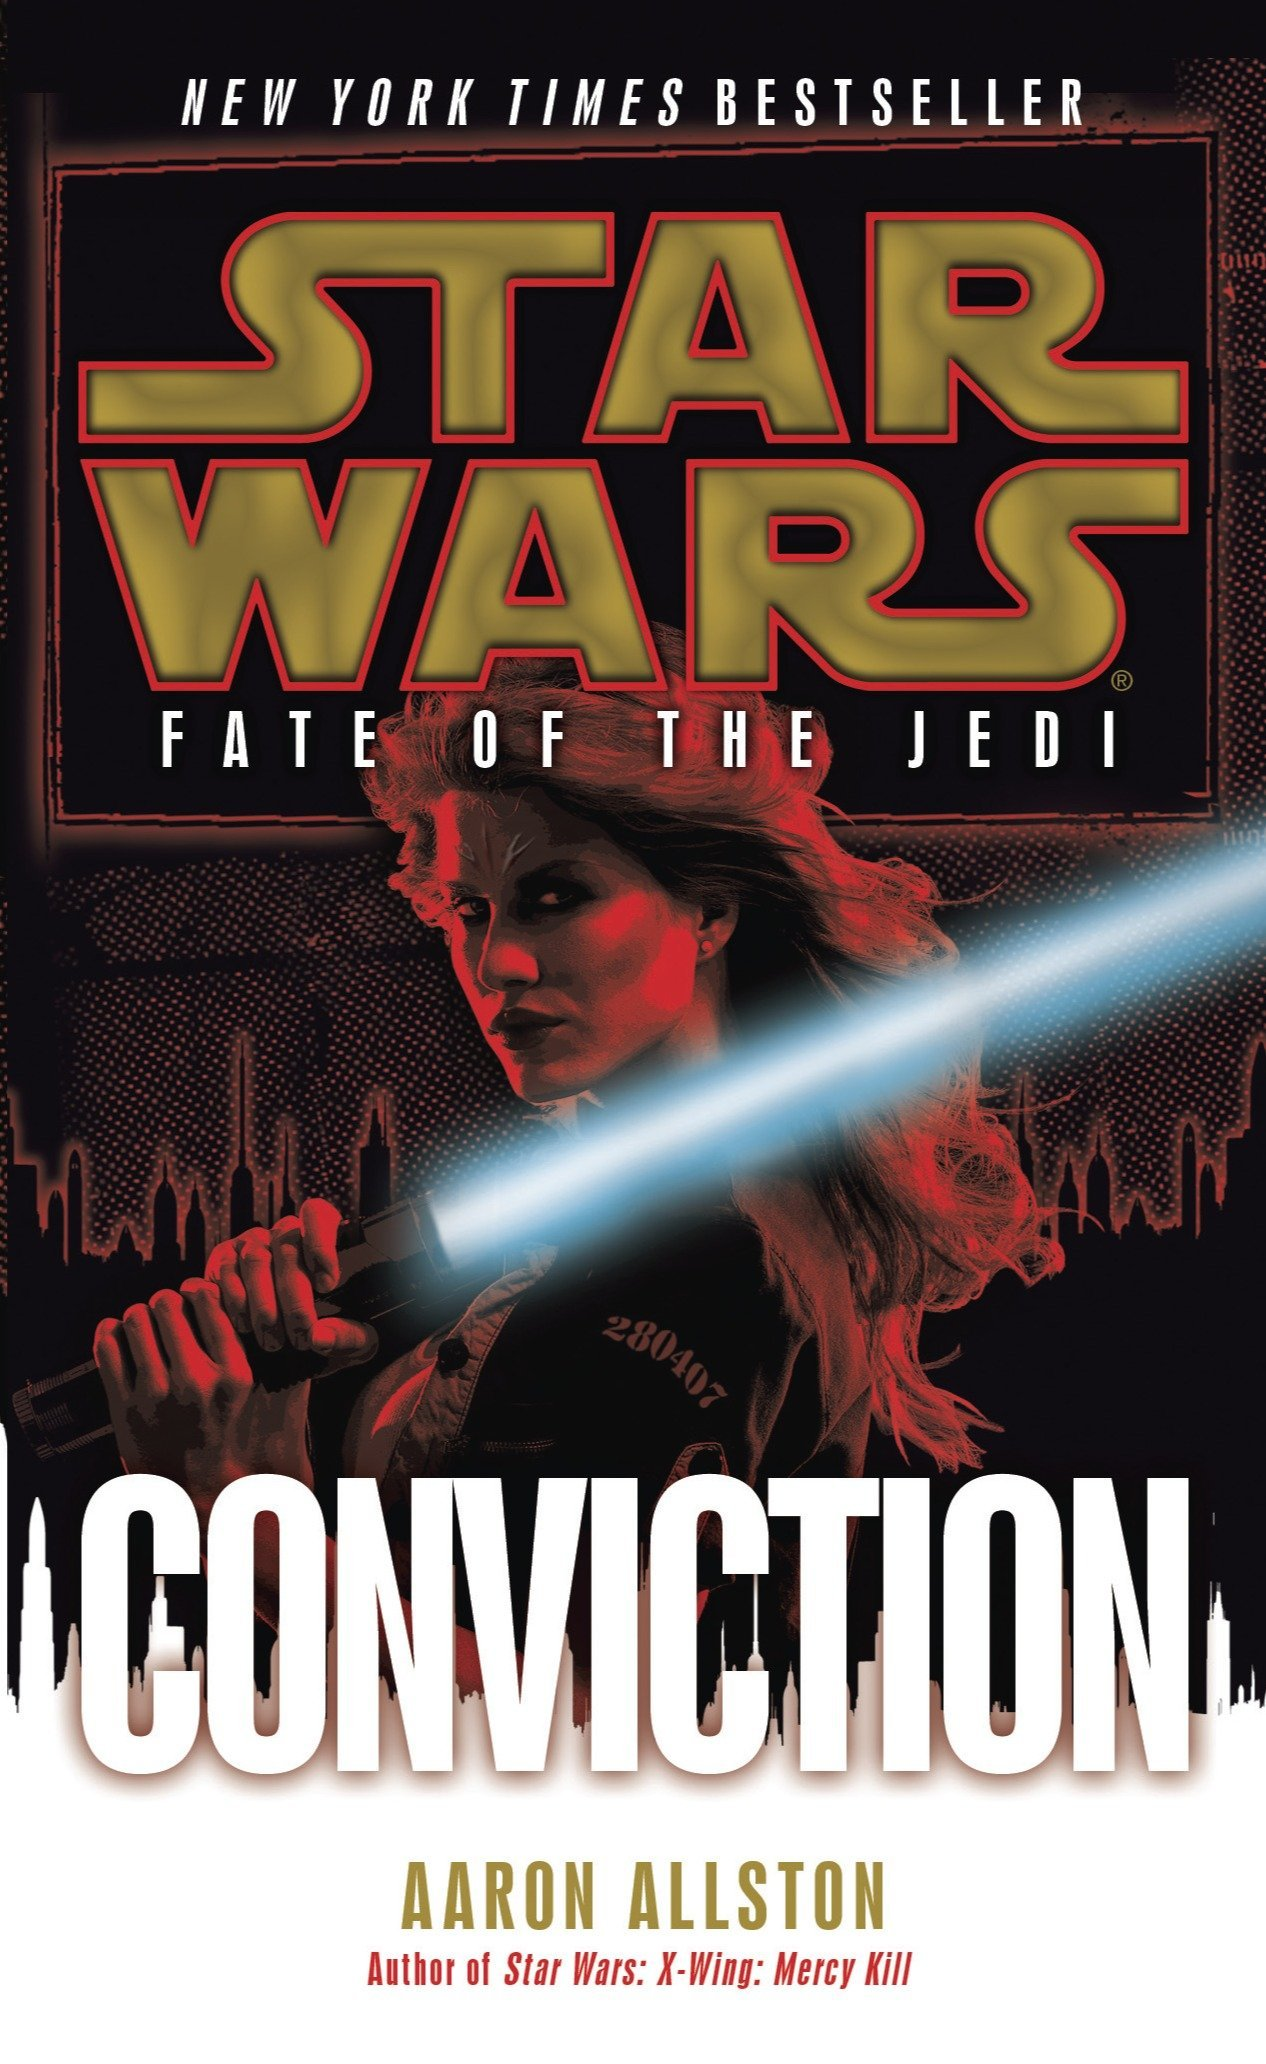 Star Wars Fate of the Jedi: Conviction